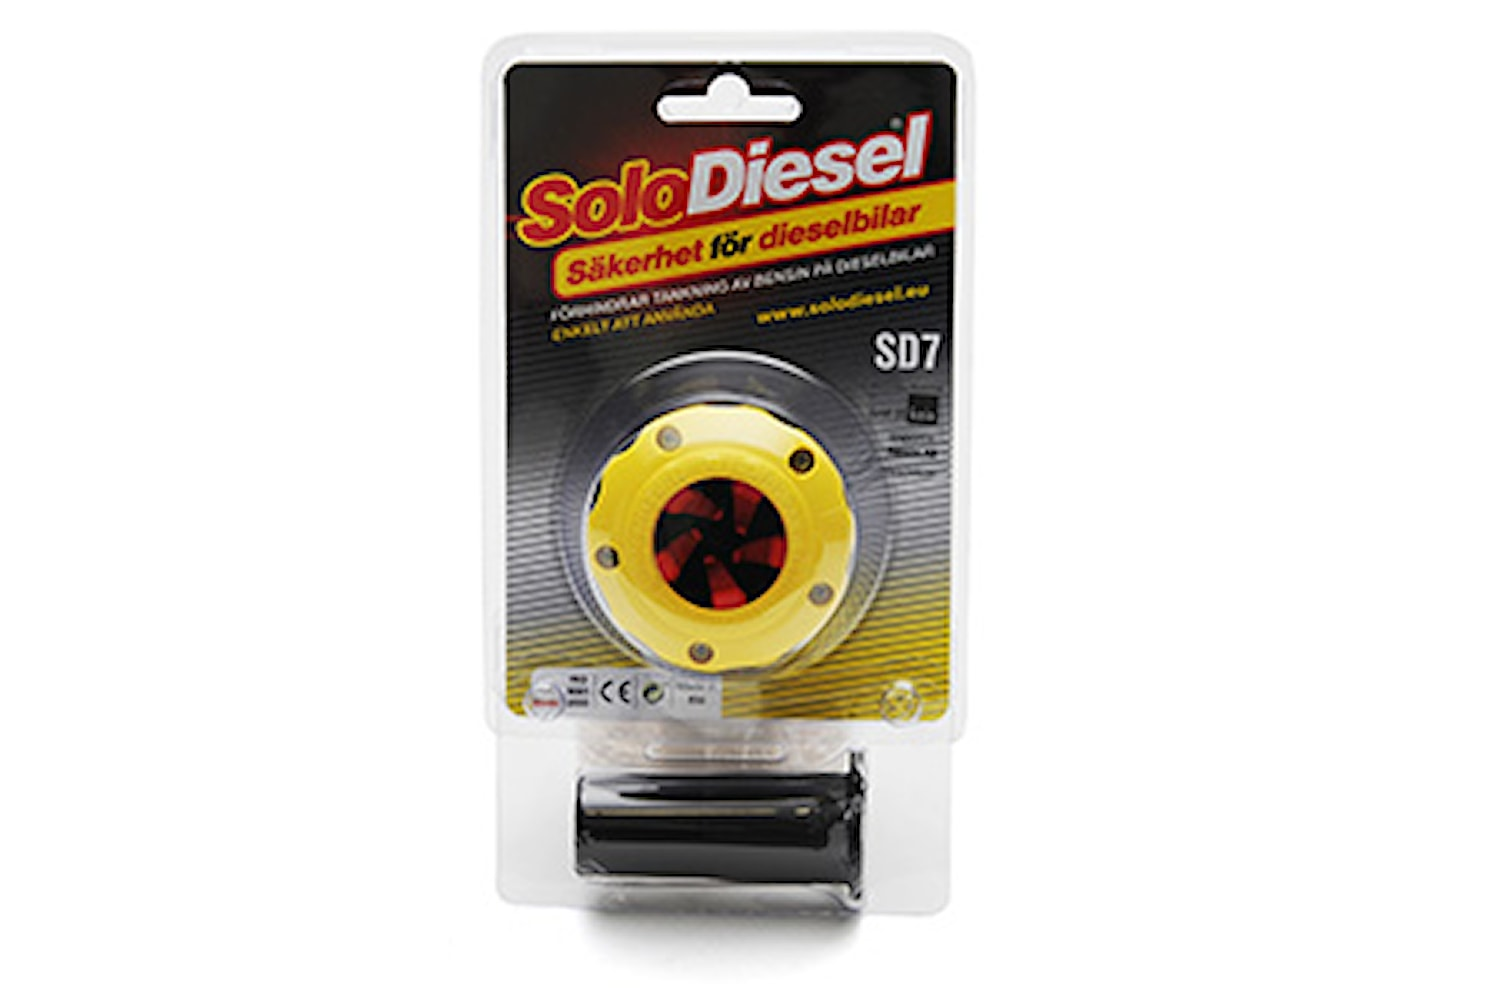 SoloDiesel SD7